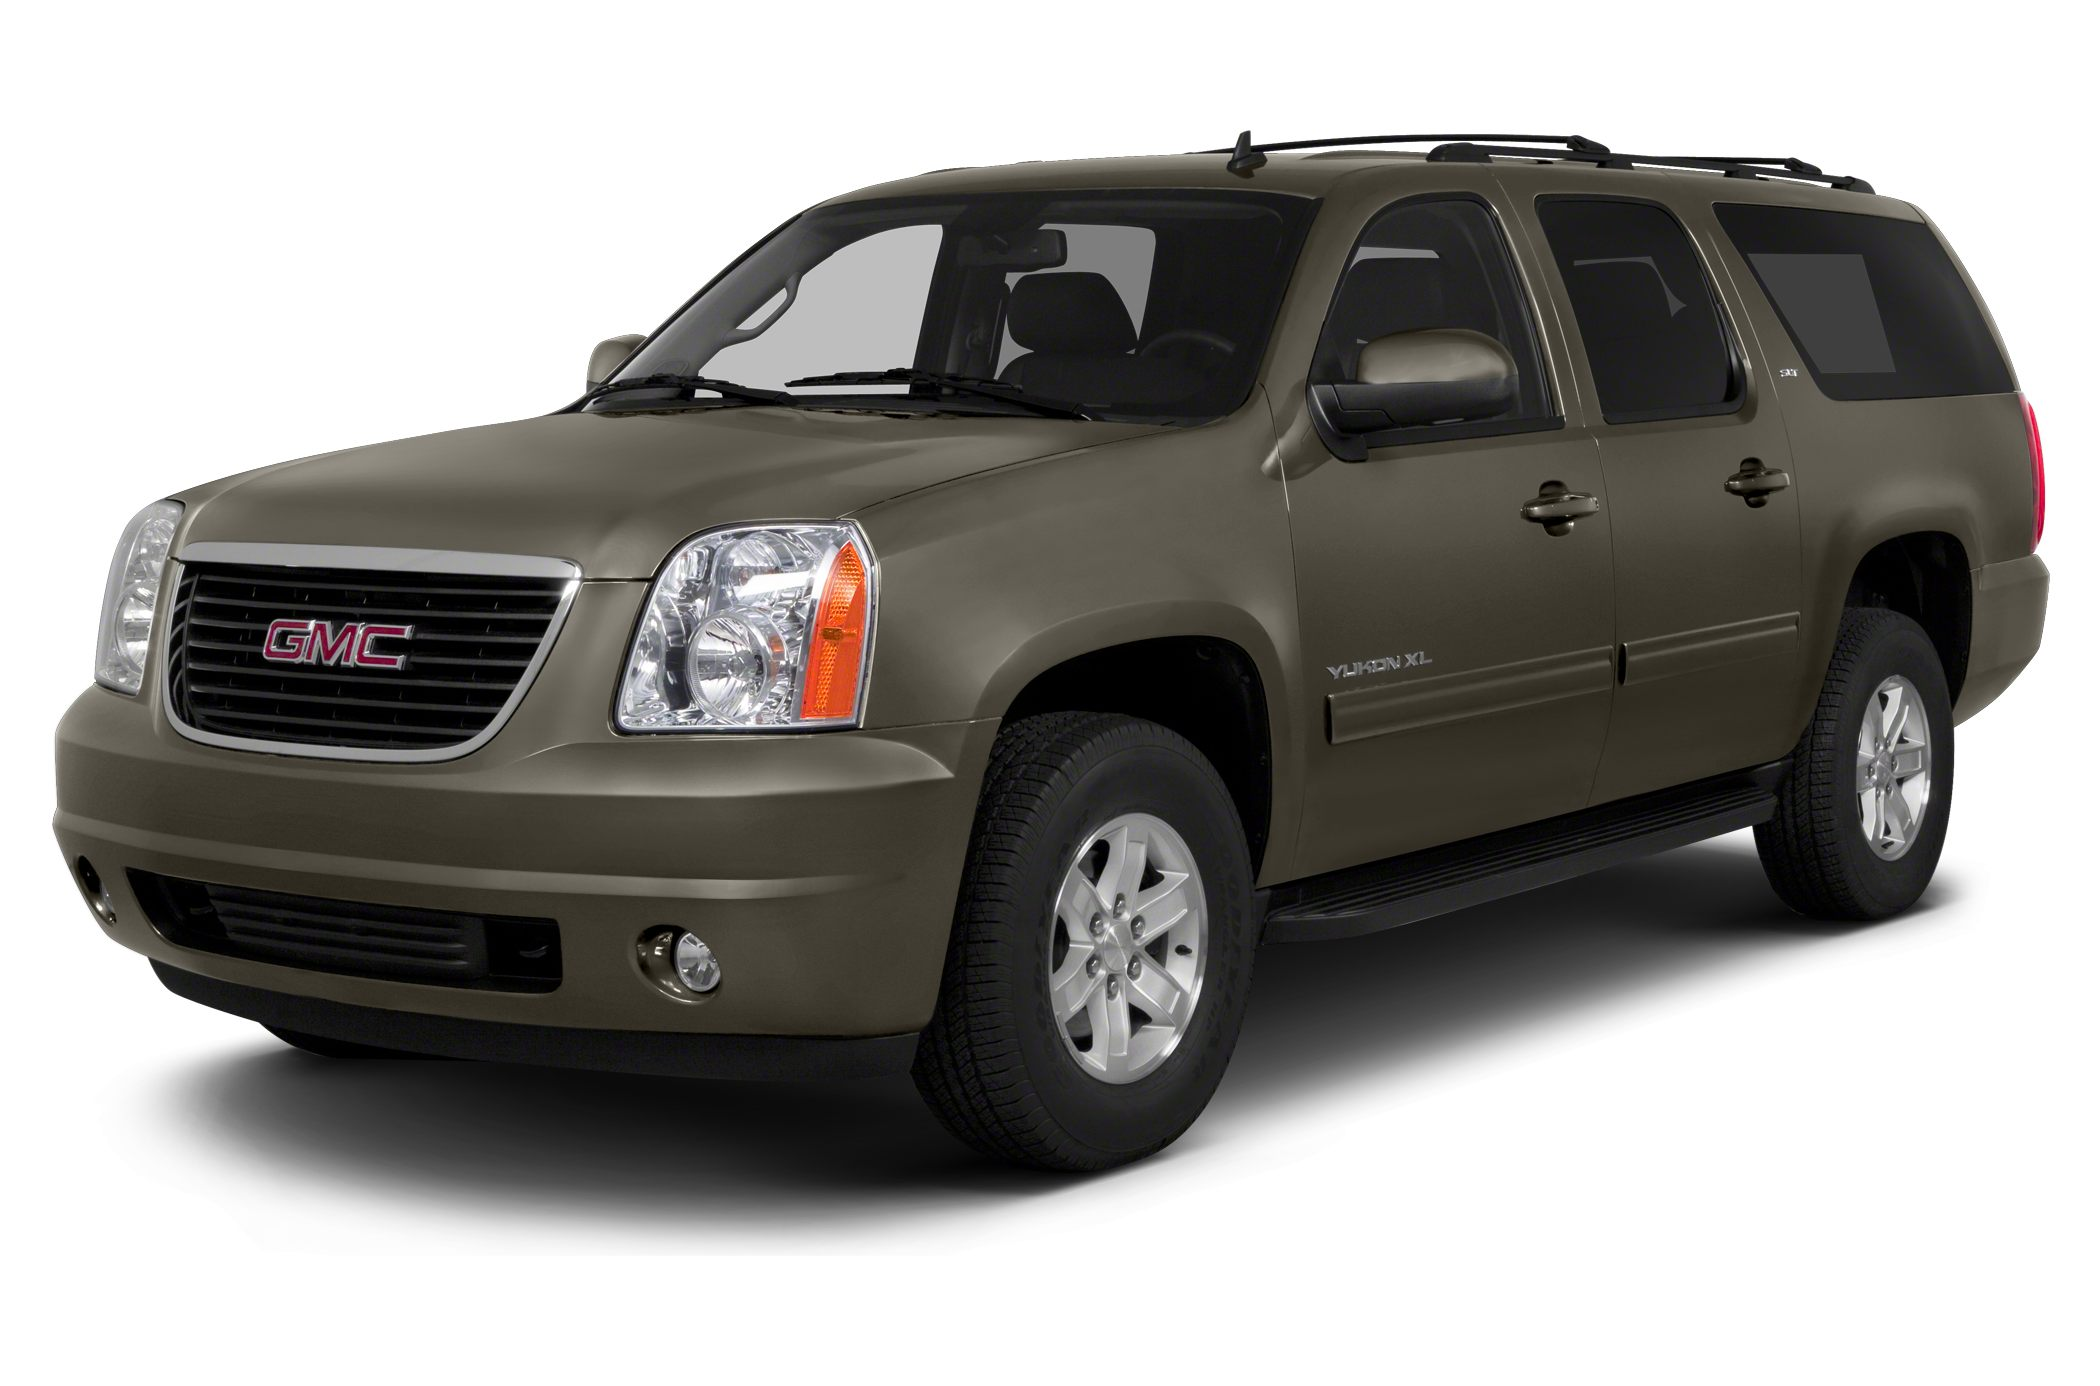 2013 GMC Yukon XL 1500 SLT SUV for sale in Paris for $29,987 with 56,515 miles